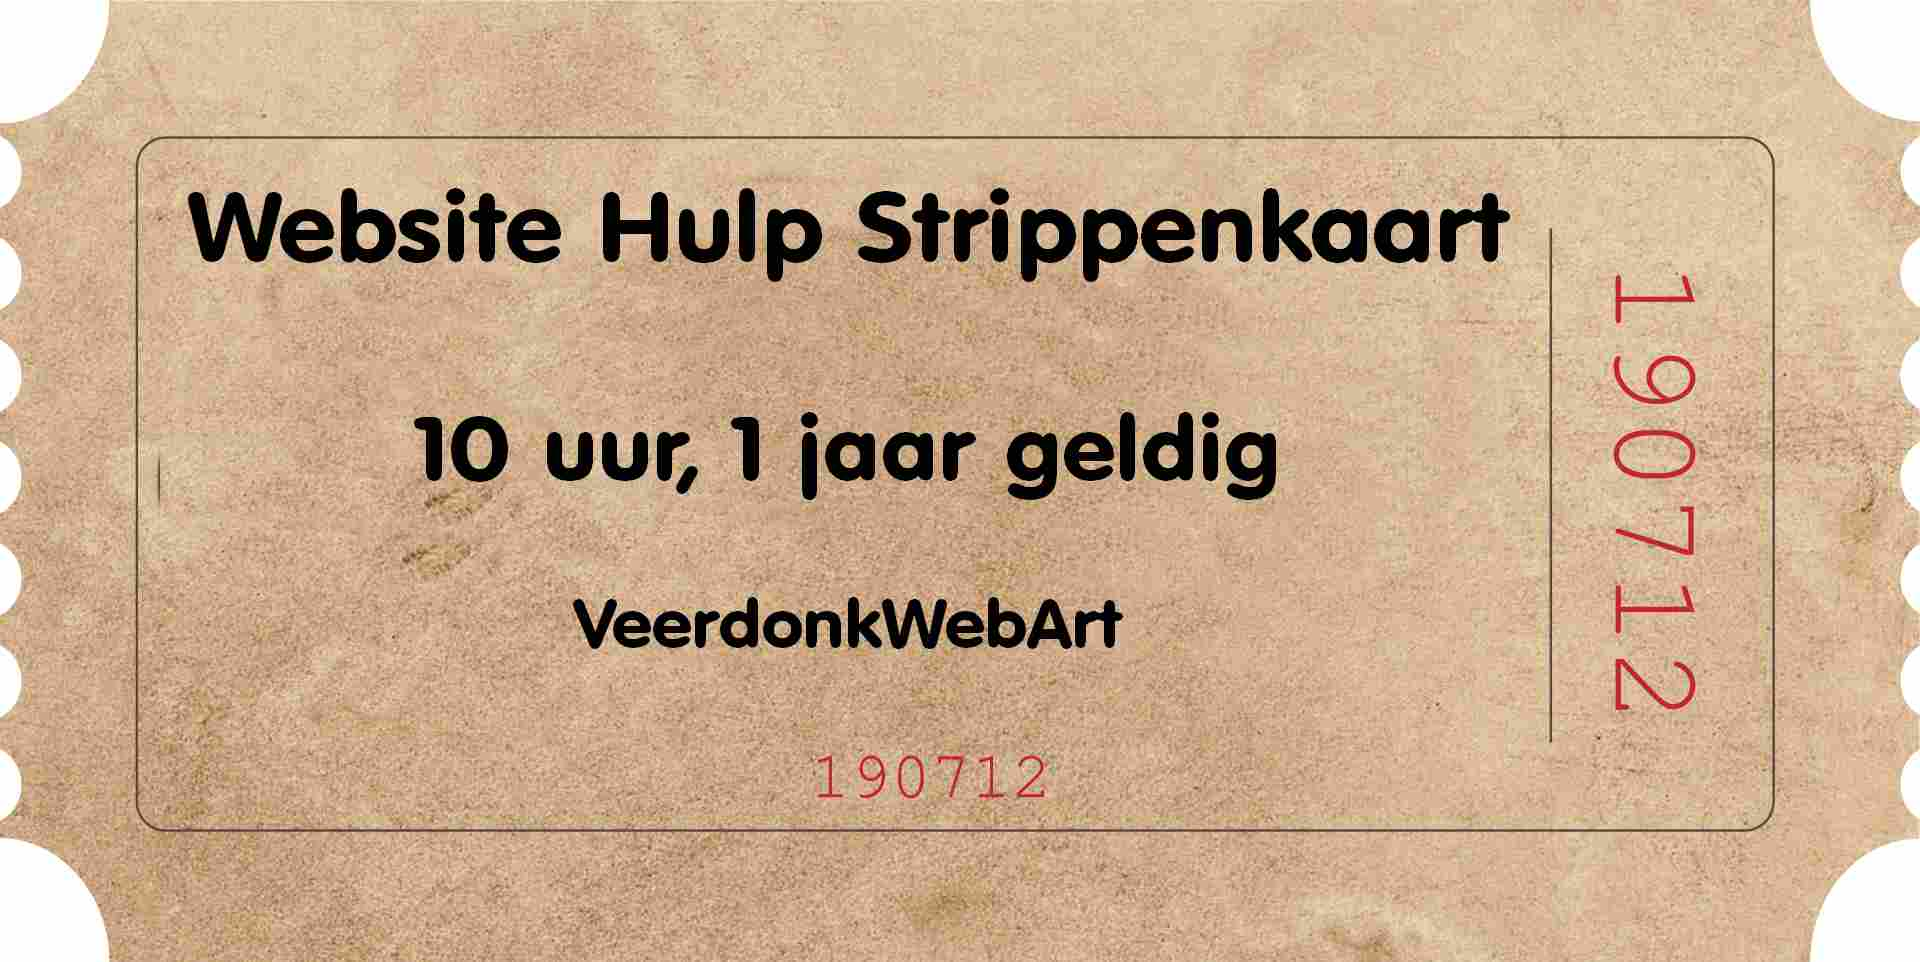 Websitehulp Strippenkaart